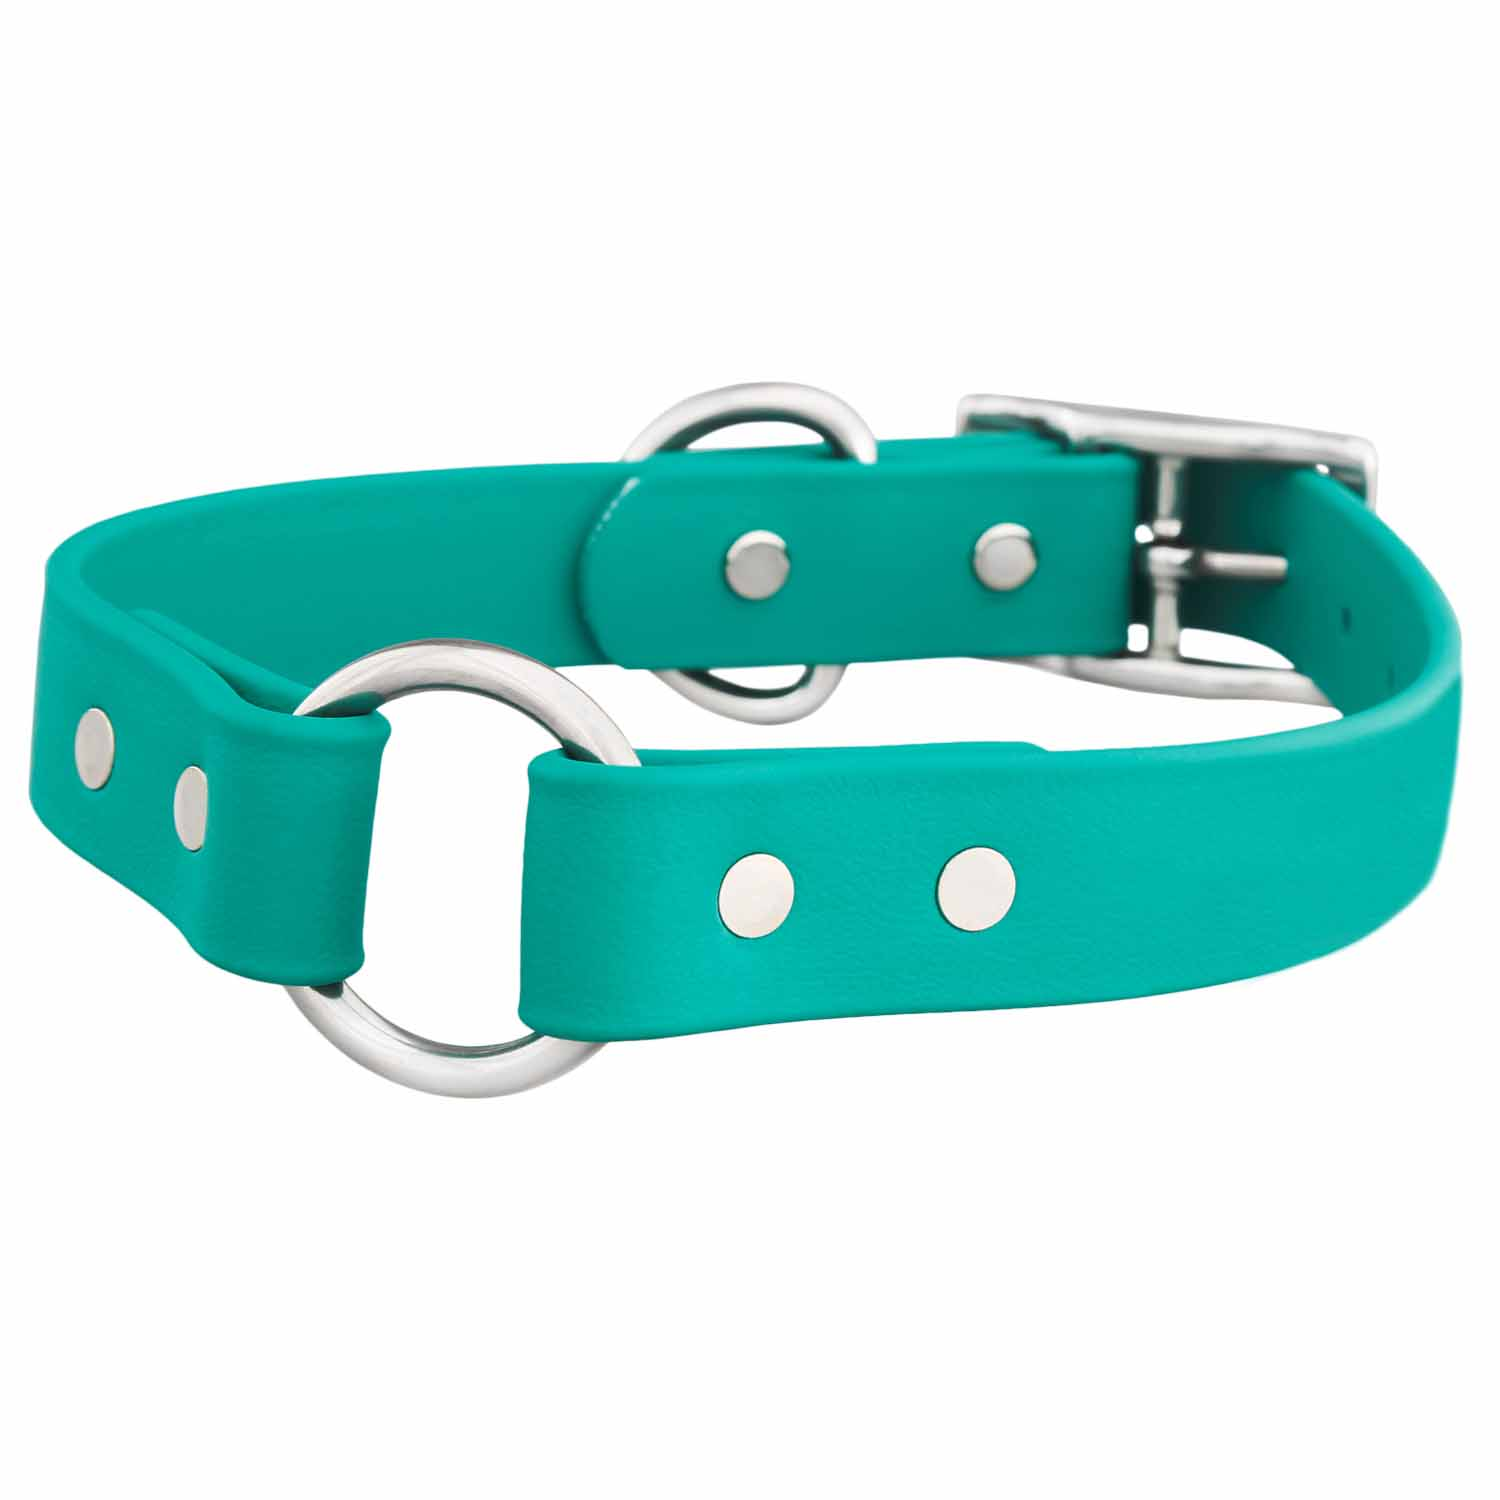 Waterproof Safety Dog Collar - Teal